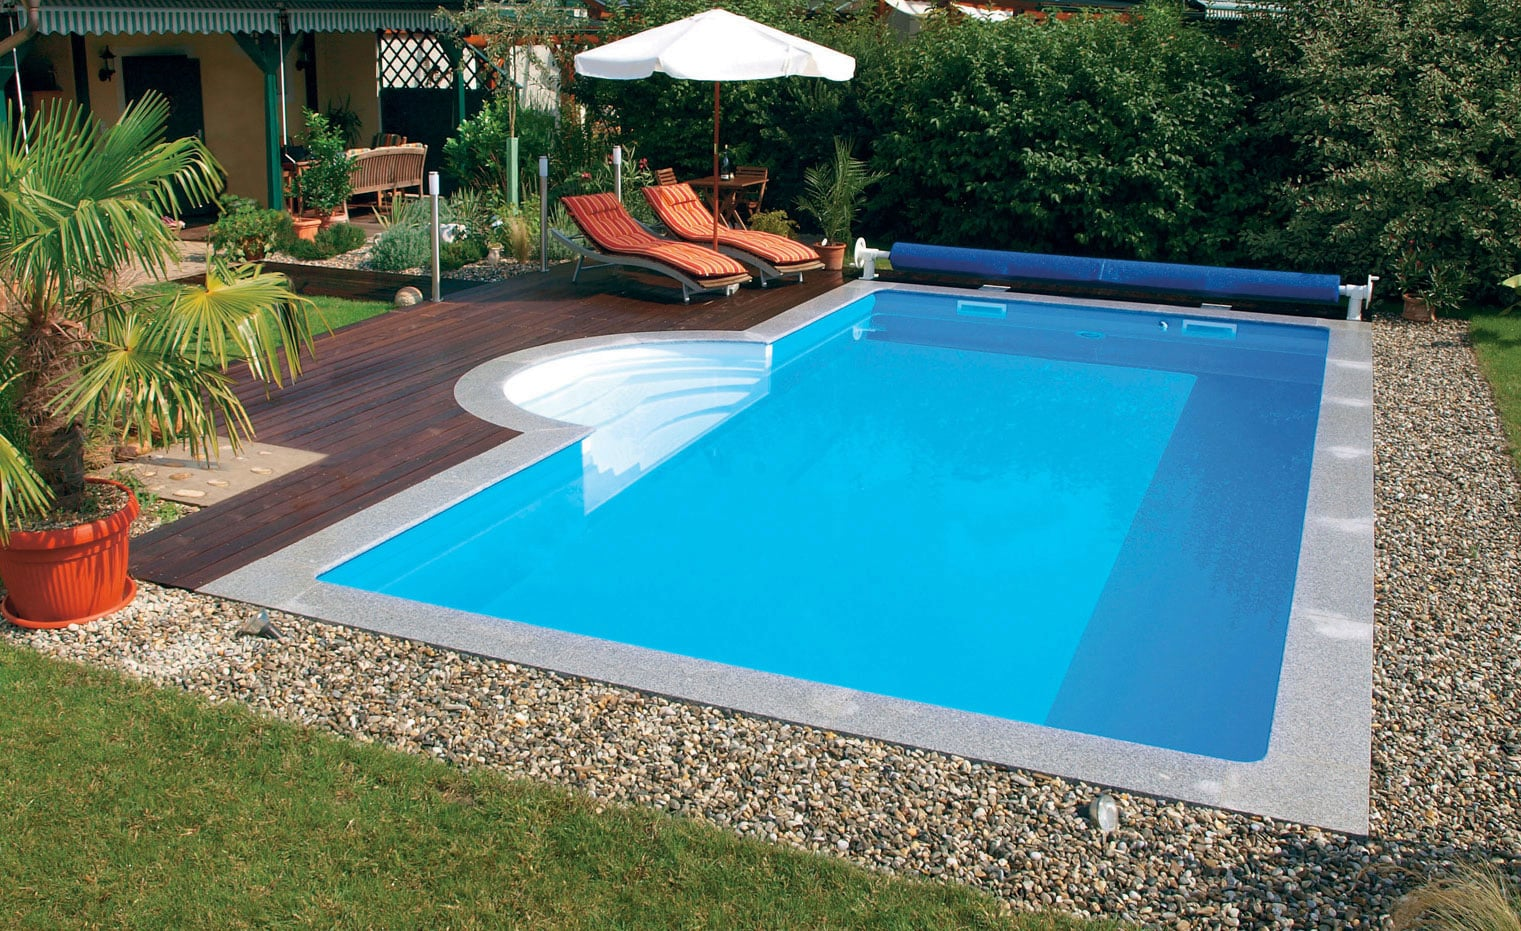 Pool Komplettset Einbau Öko Pool Komplettset Highlight 600 X 300 X 150 Cm